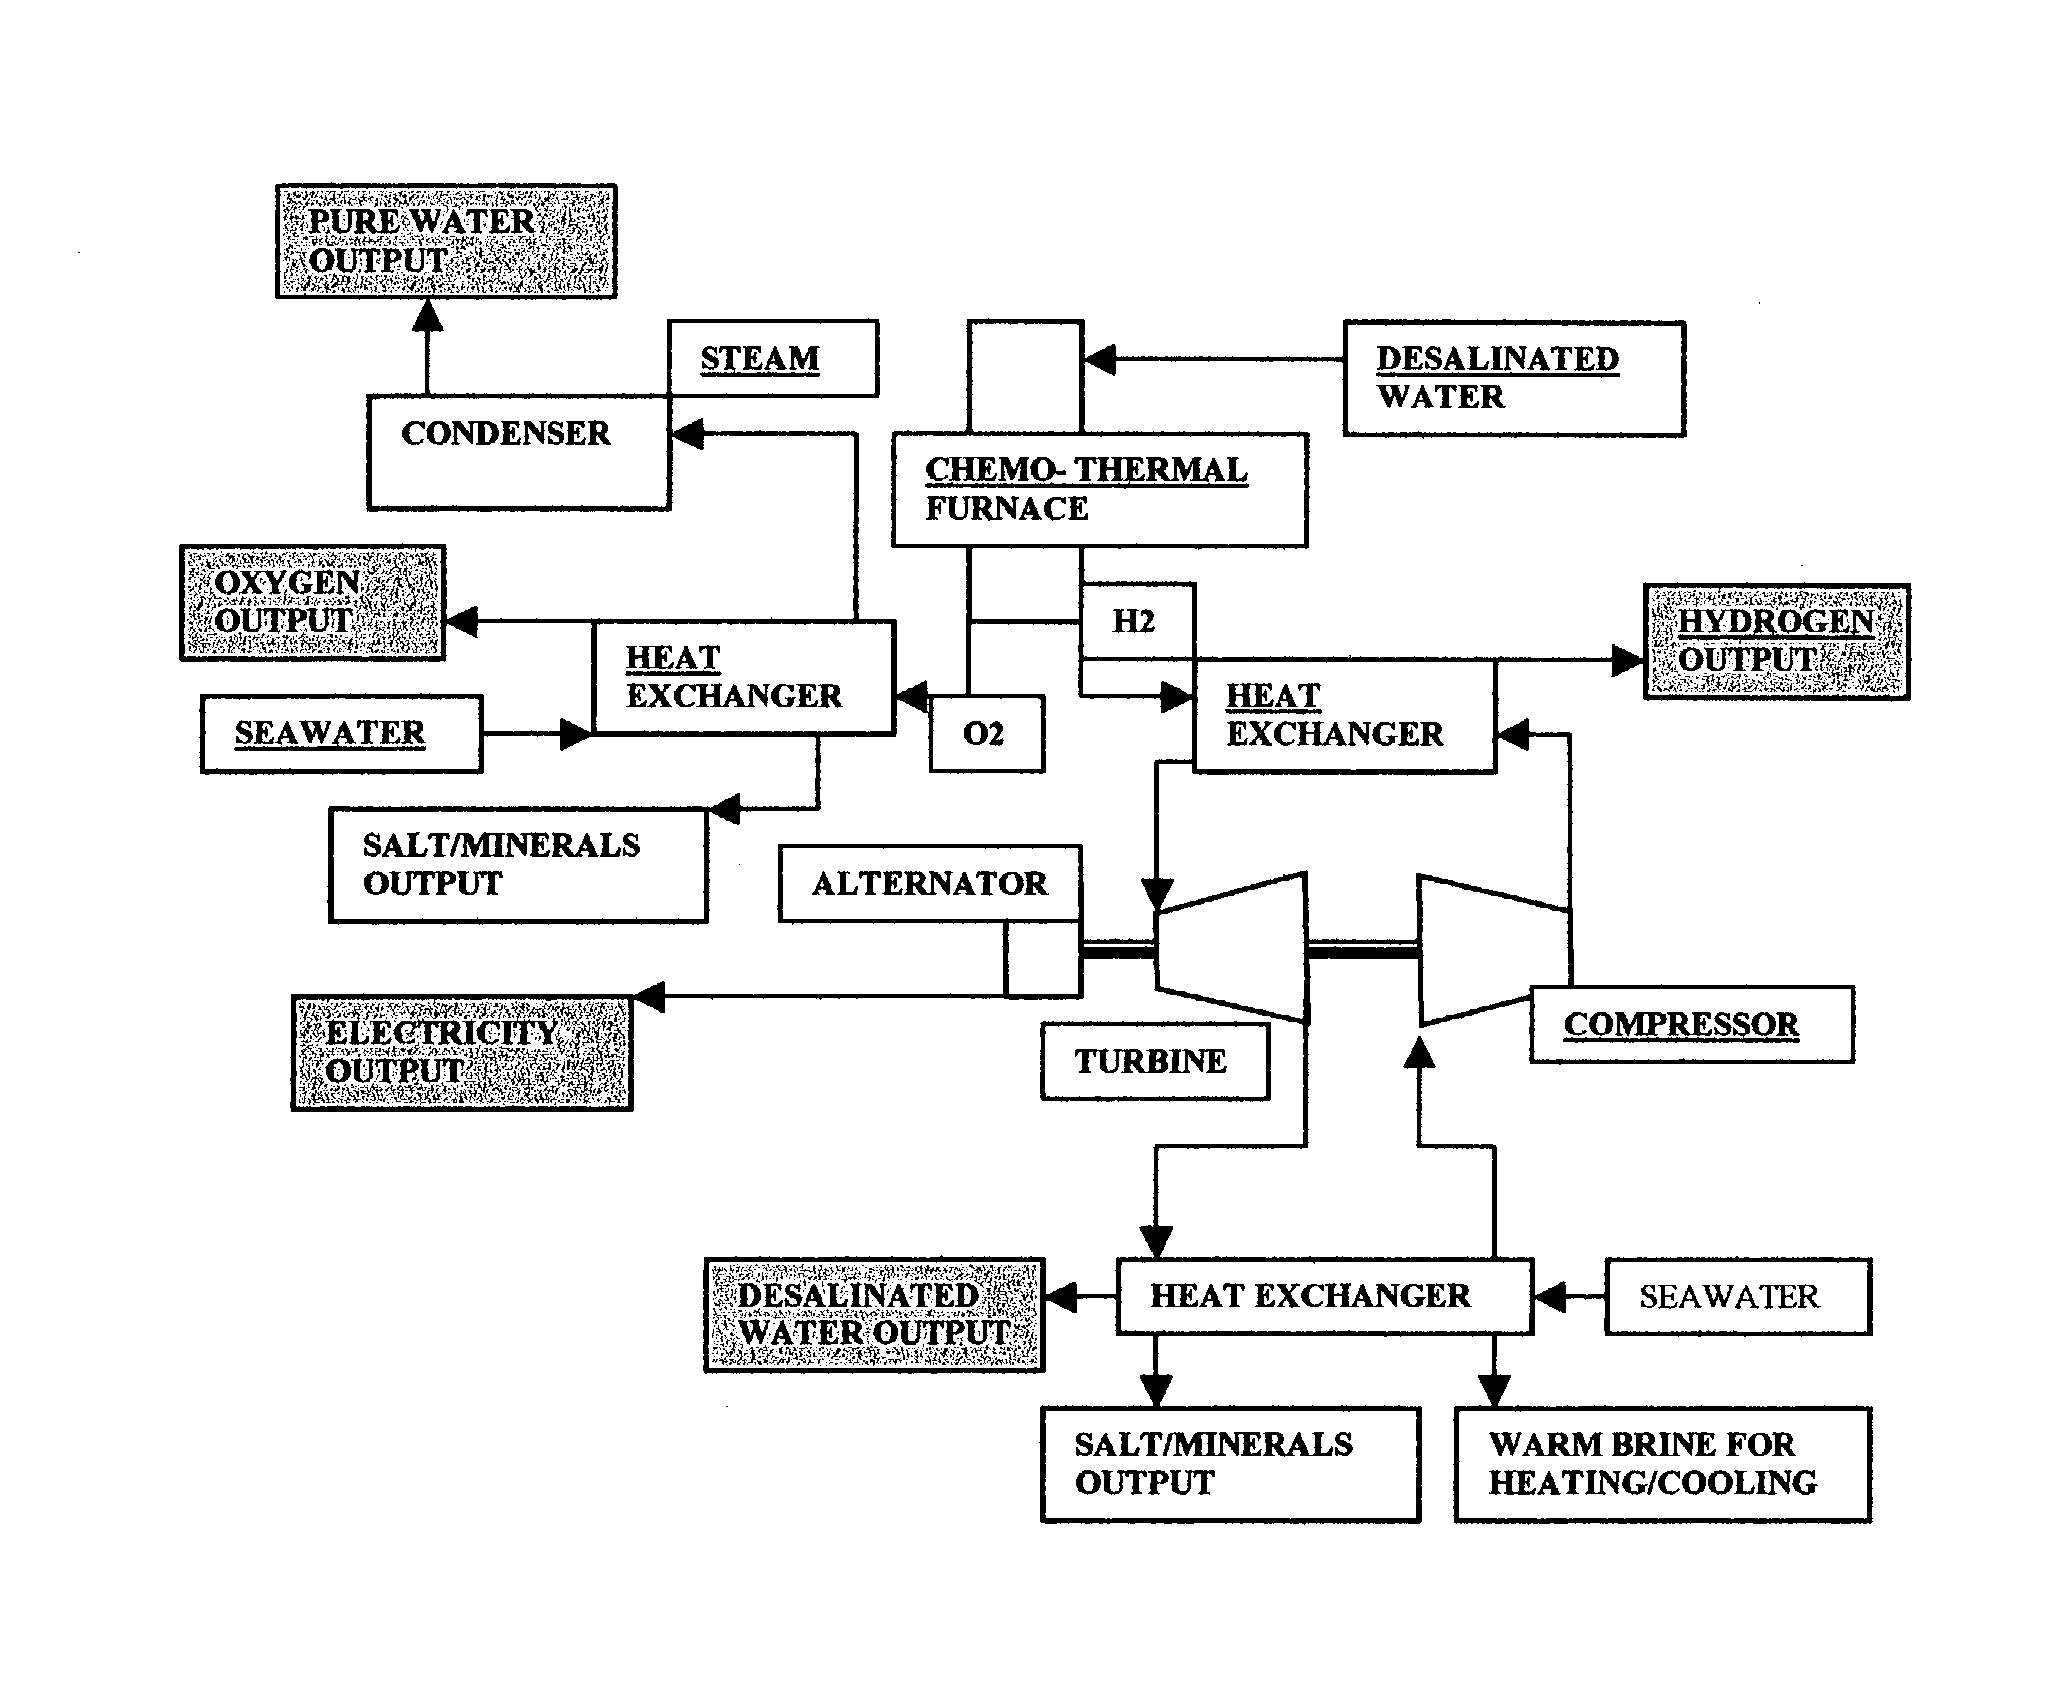 Patent US L & N cycle for hydrogen electricity